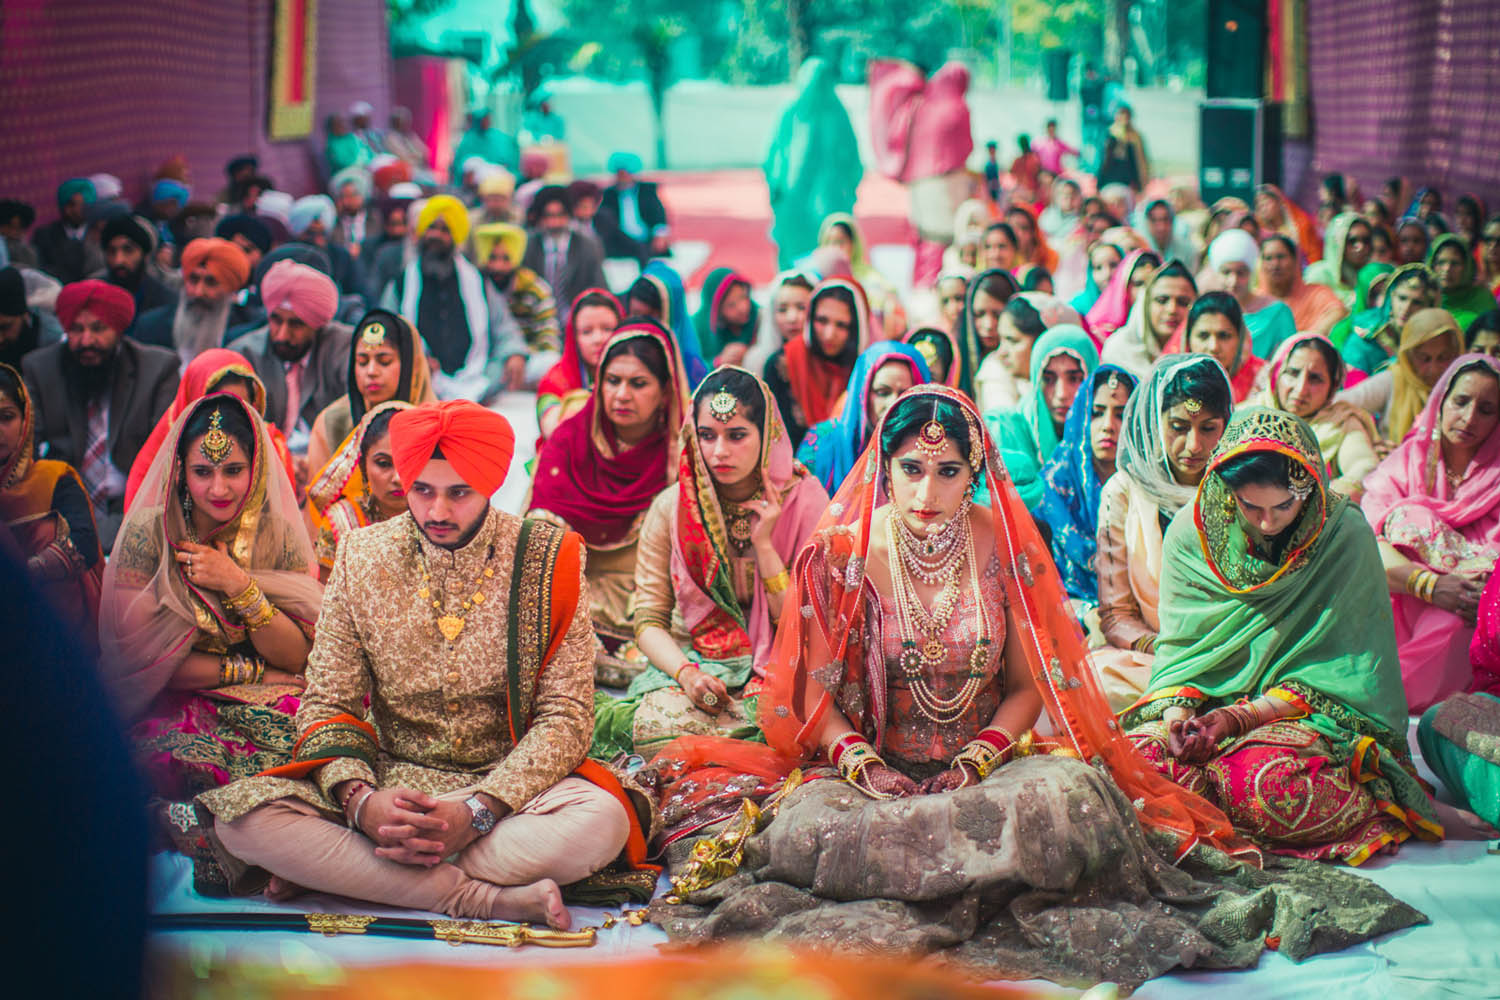 punjab_wedding60.jpg